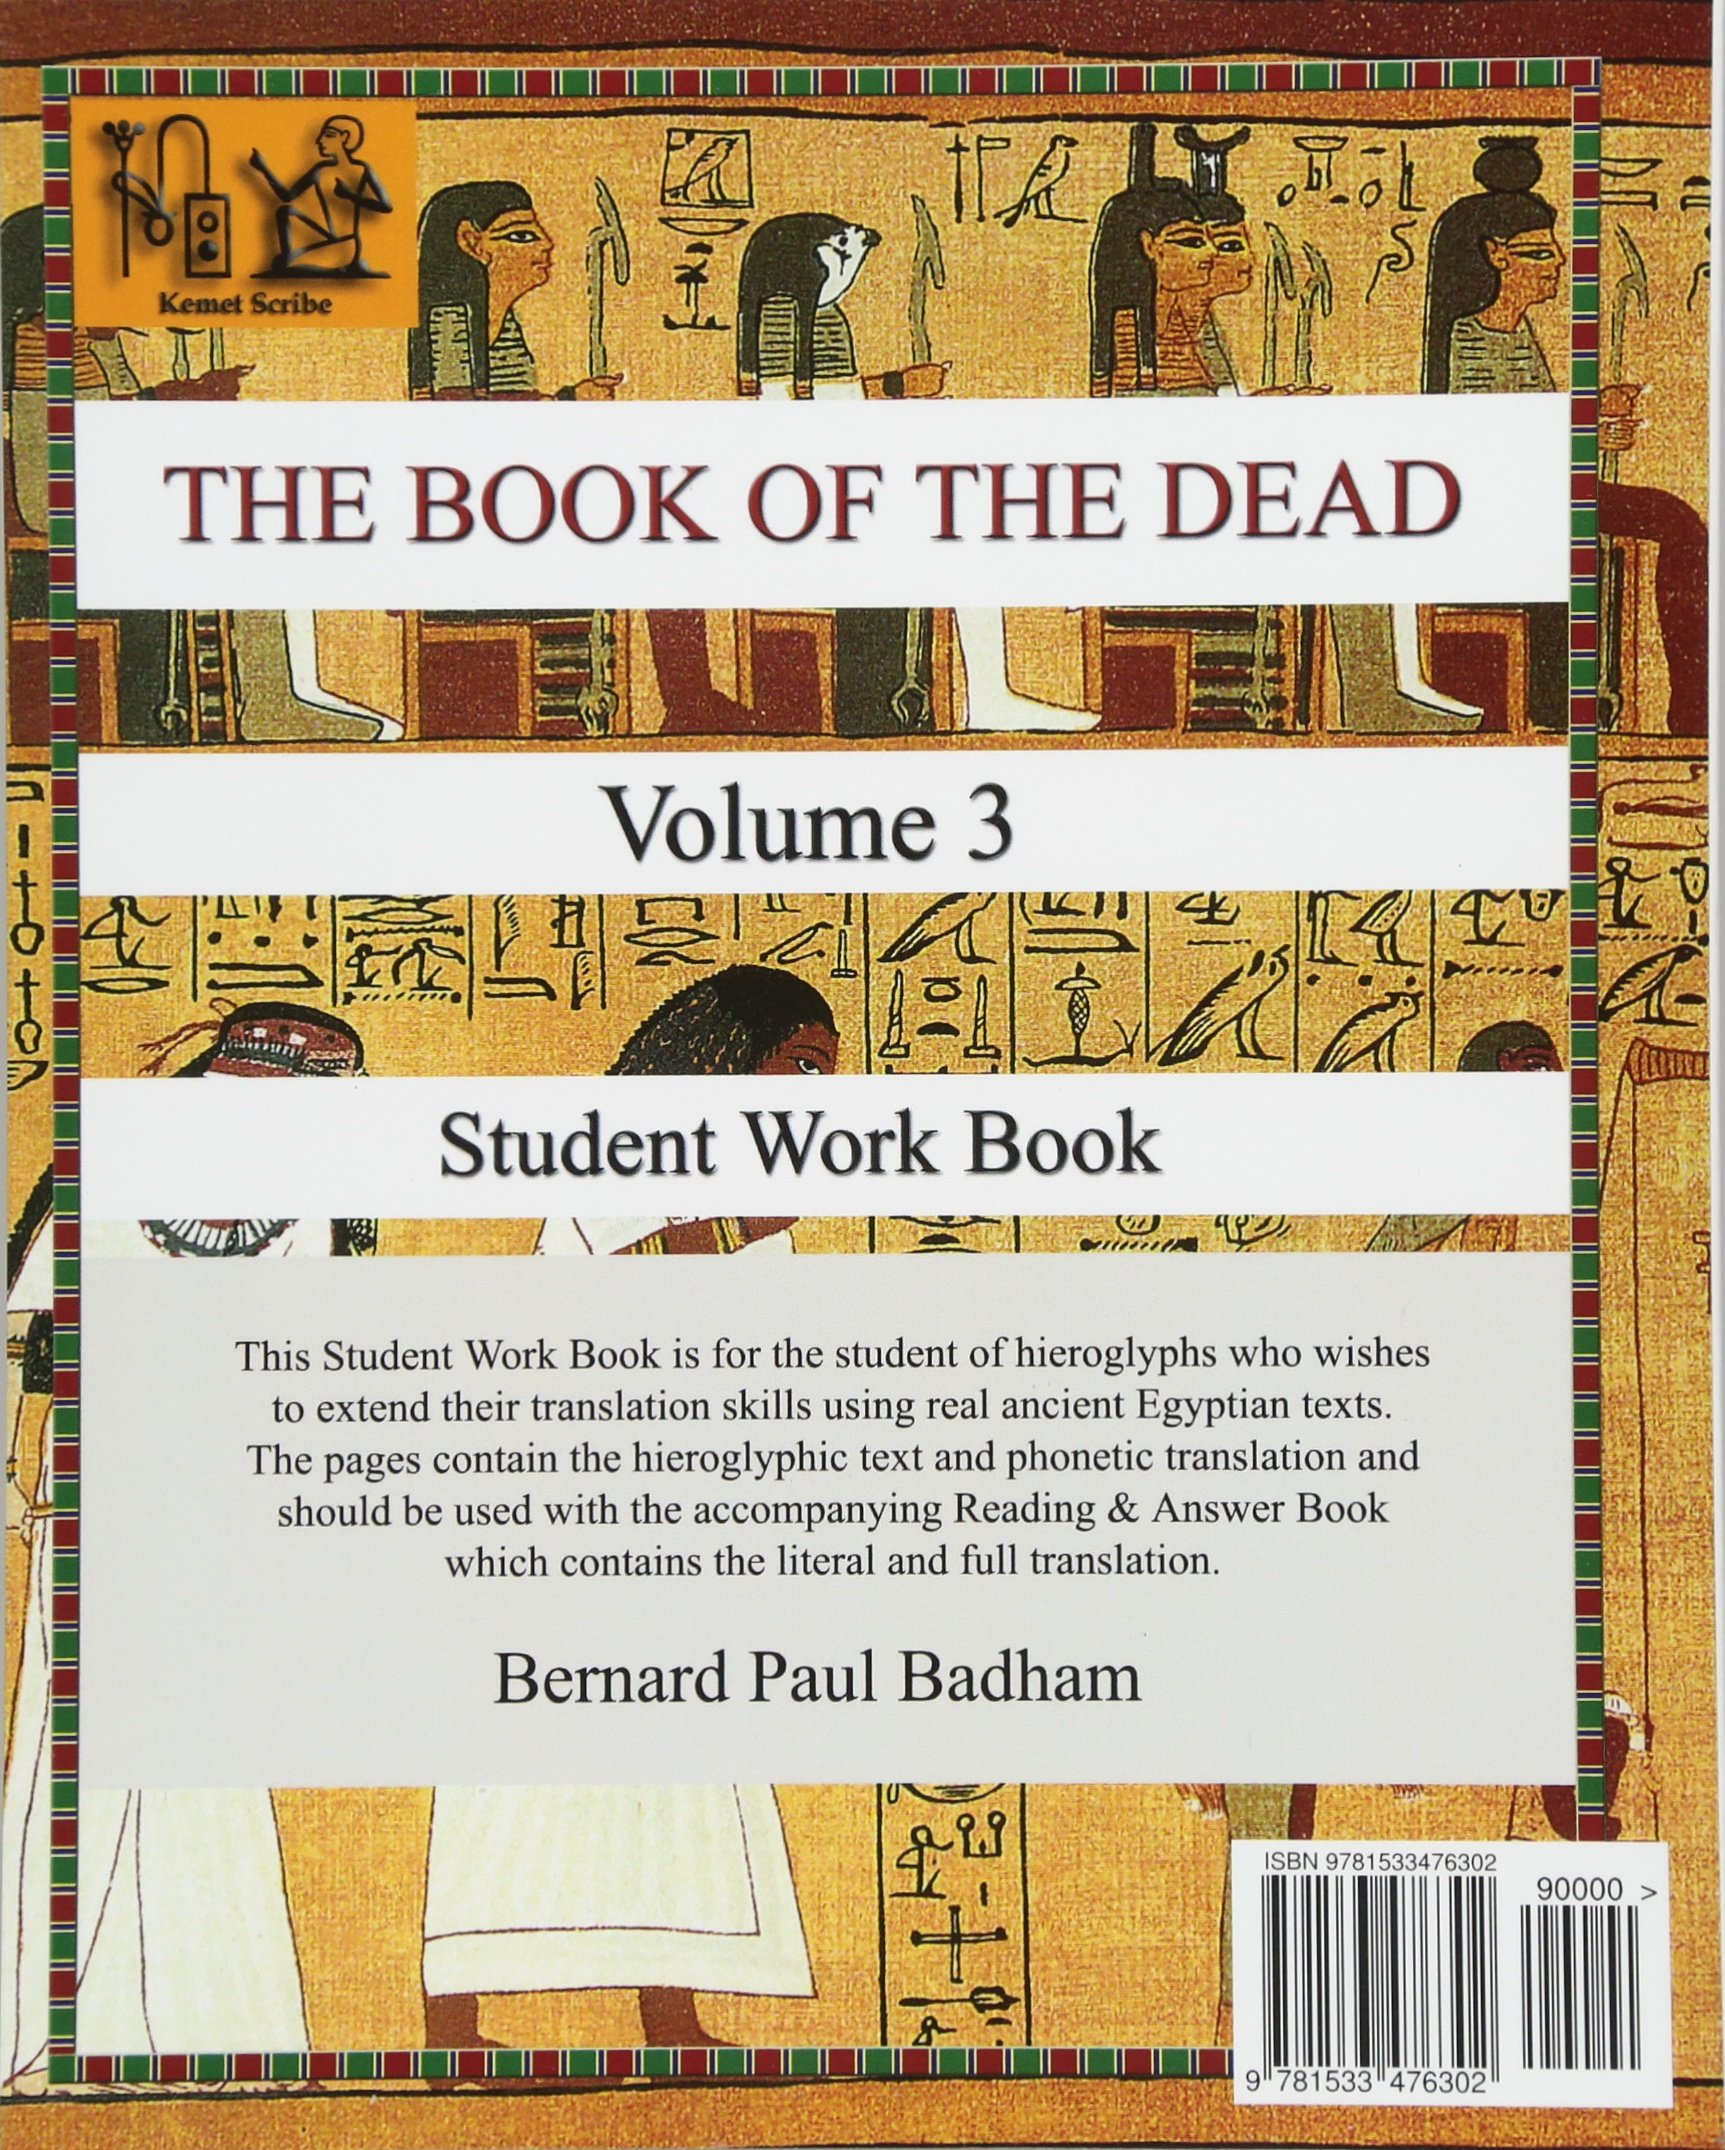 THE BOOK OF THE DEAD (VOLUME 3) Student Work Book (THE BOOK OF THE